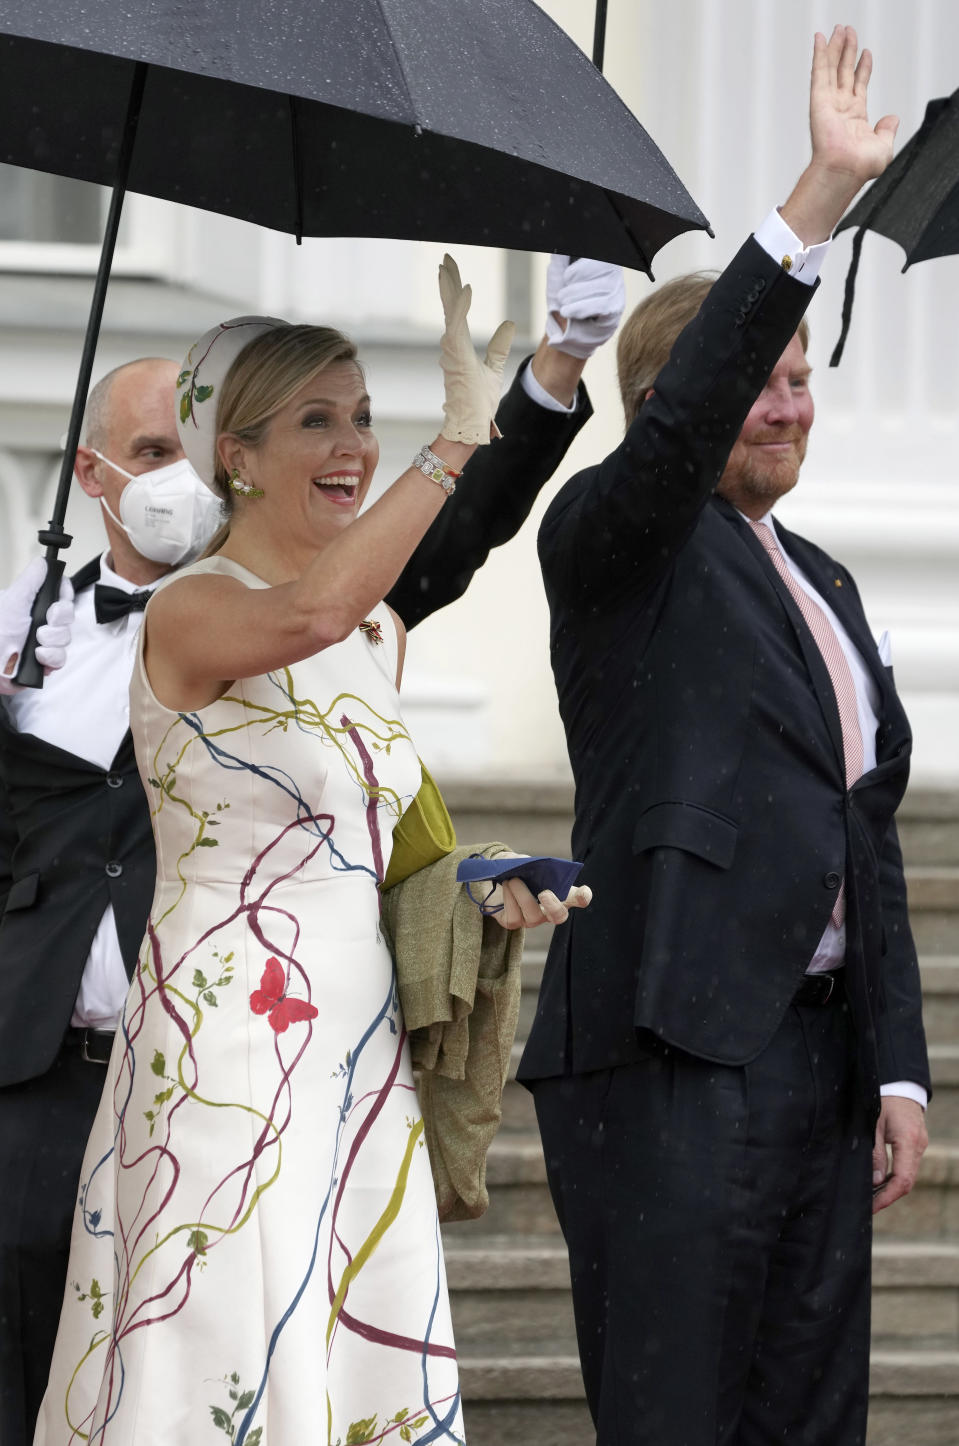 Dutch King Willem-Alexander, right and his wife Queen Maxima, front left, wave as they arrive for a meeting with German President Frank-Walter Steinmeier in Berlin, Germany, Monday, July 5, 2021. King Willem-Alexander and Queen Maxima are on a three day visit in Germany. (AP Photo/Michael Sohn)